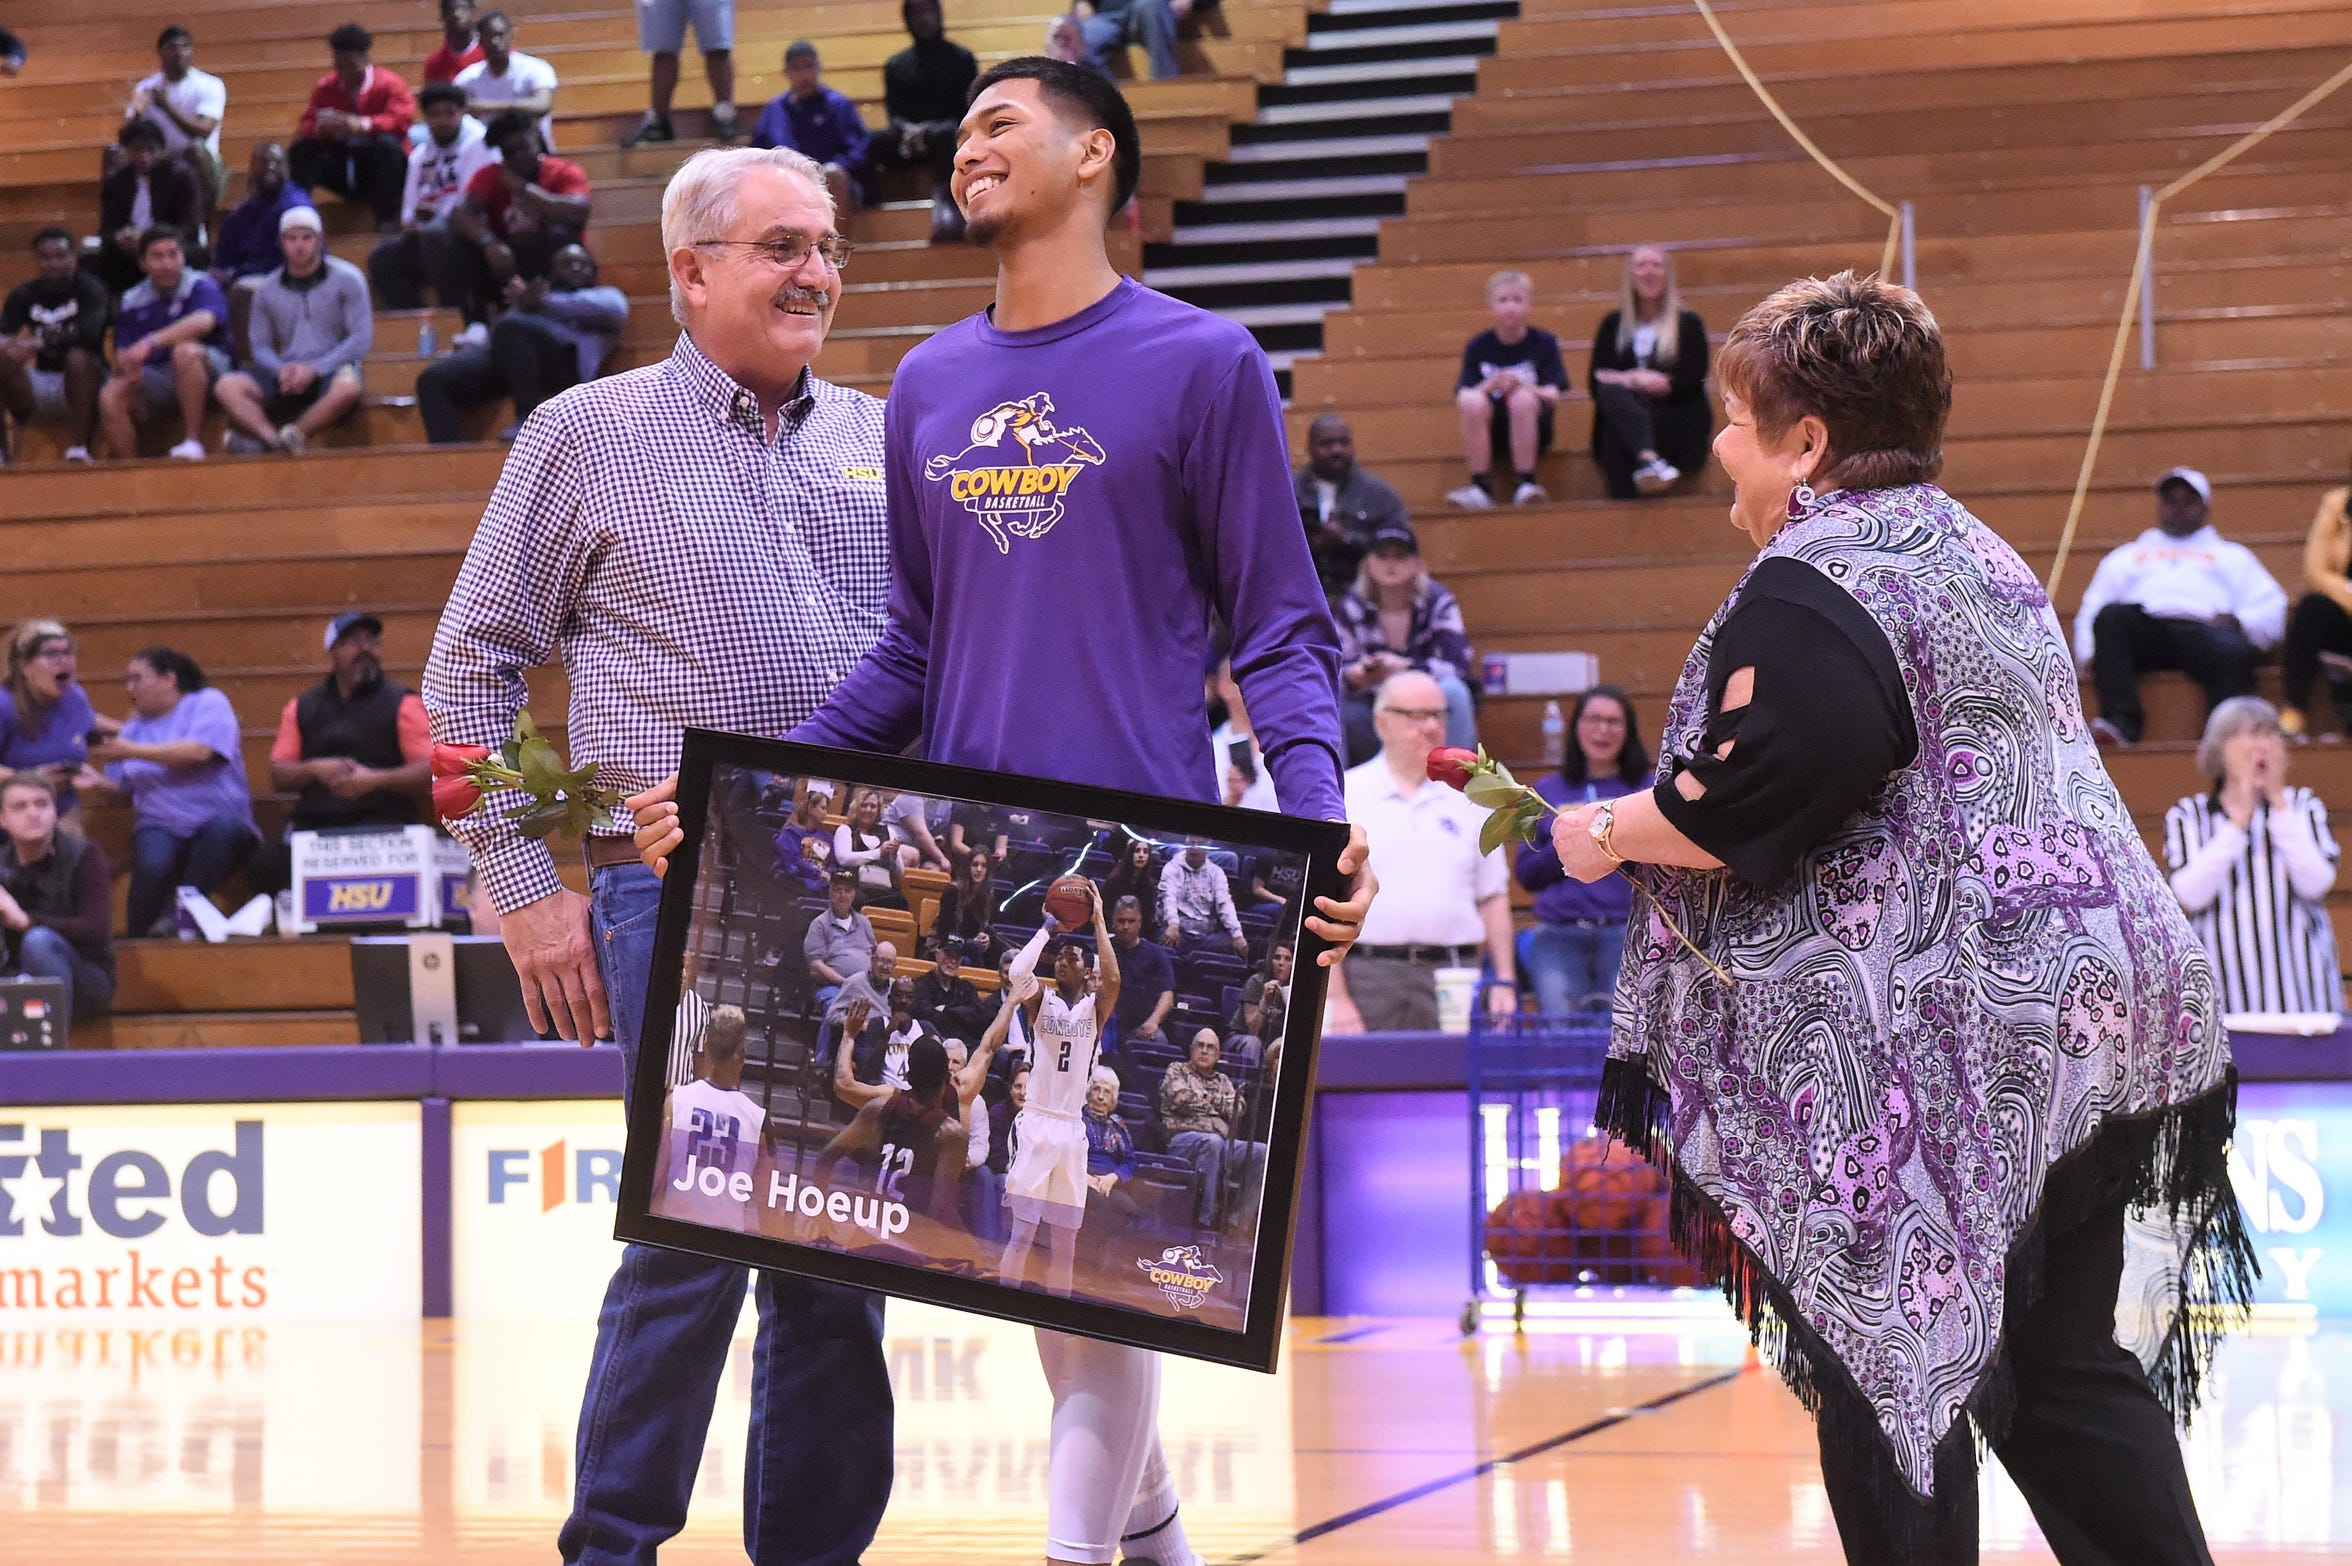 Hardin-Simmons senior guard Joe Hoeup, middle, reacts to hearing his mom and family was flown in from California for Saturday's Senior Day game at the Mabee Complex.